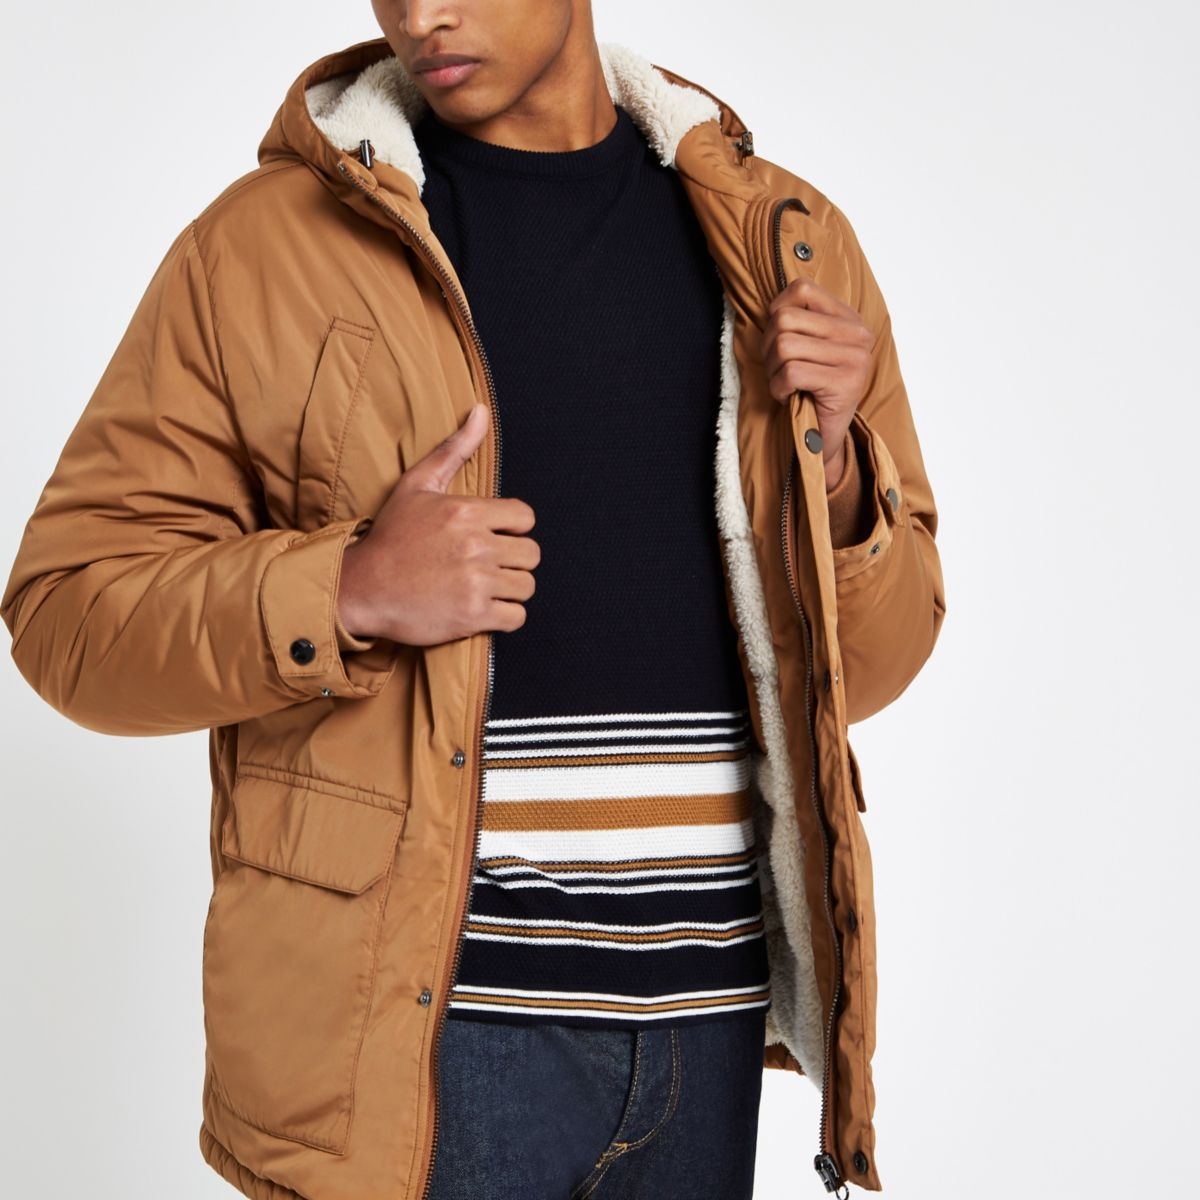 Light brown hooded fleece lined jacket